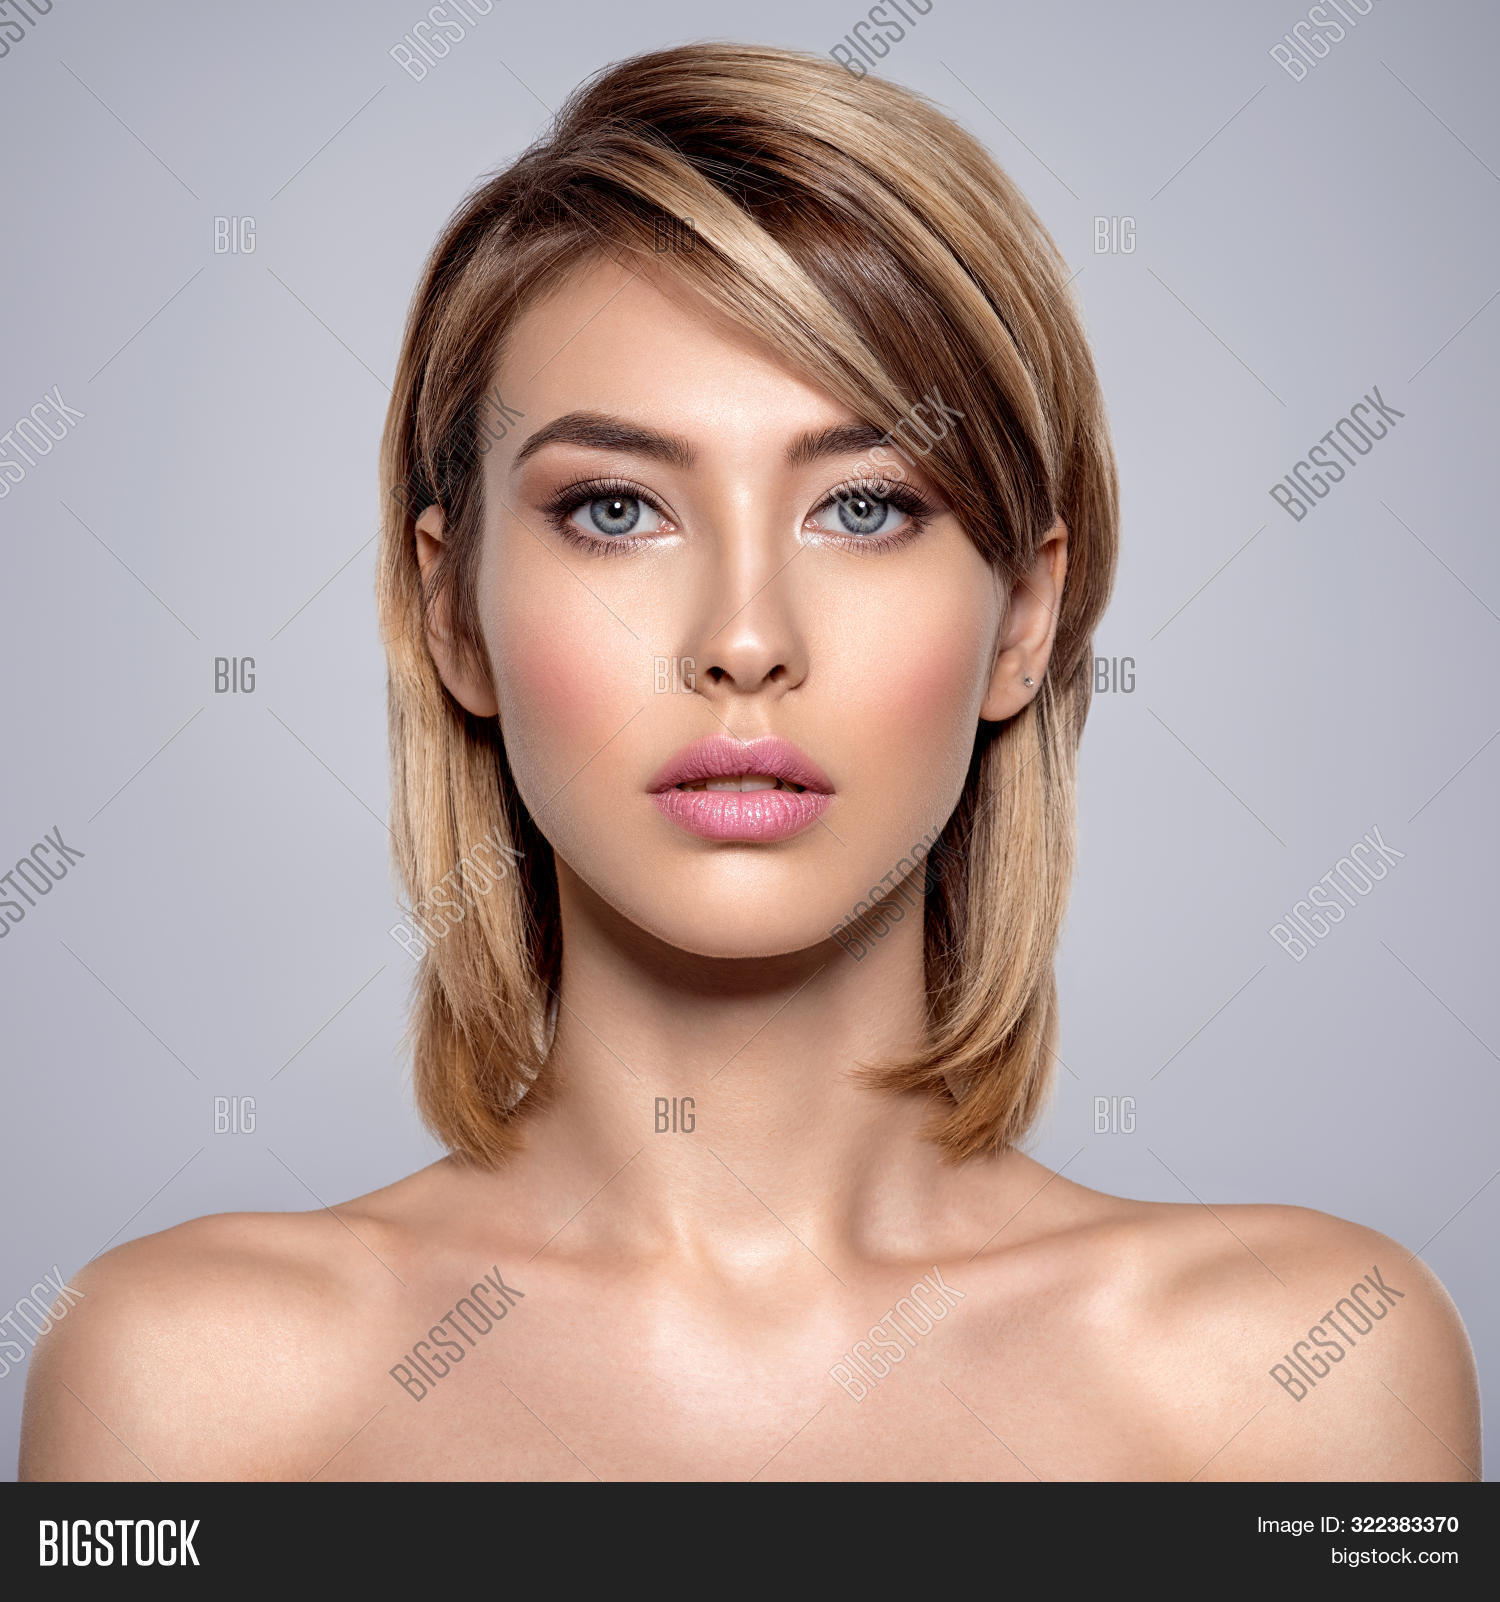 Front portrait of the woman with beauty face - isolated. Portrait of beautiful young blond woman wit